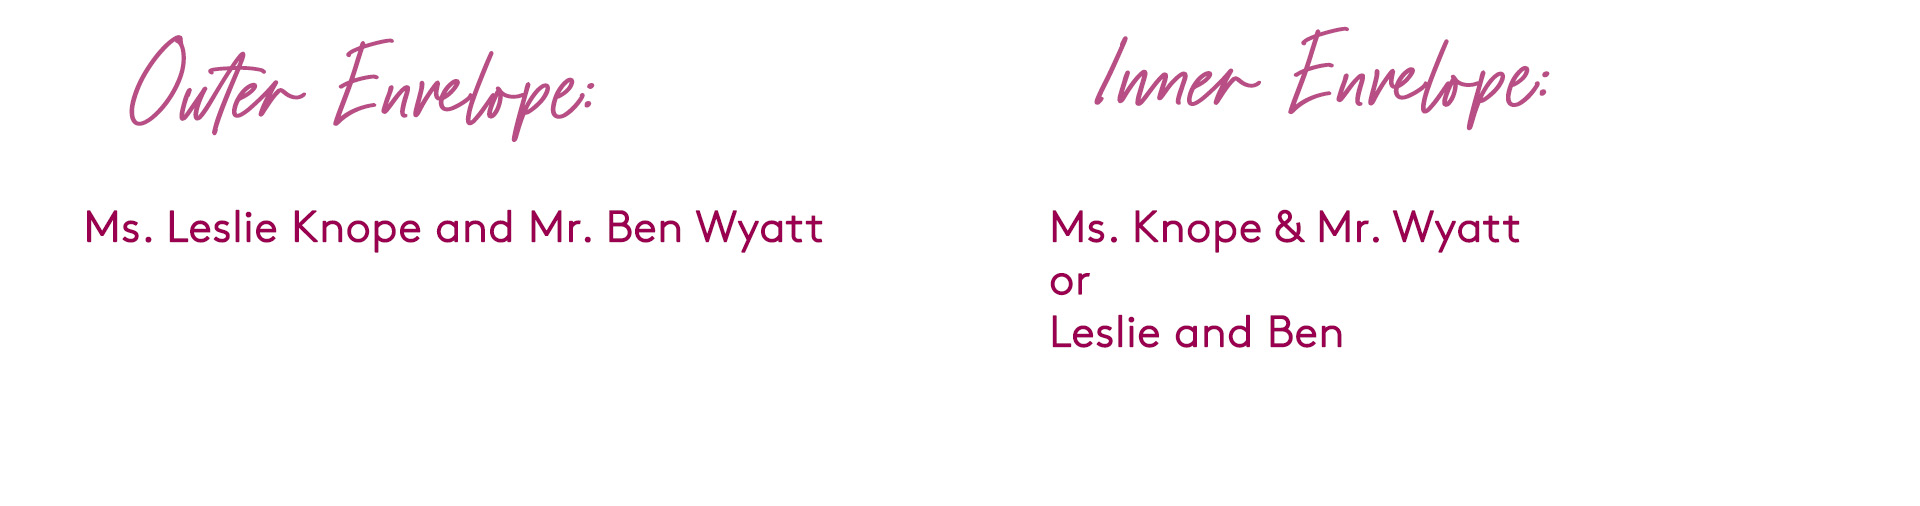 how to address wedding invitation to a married couple with different last names